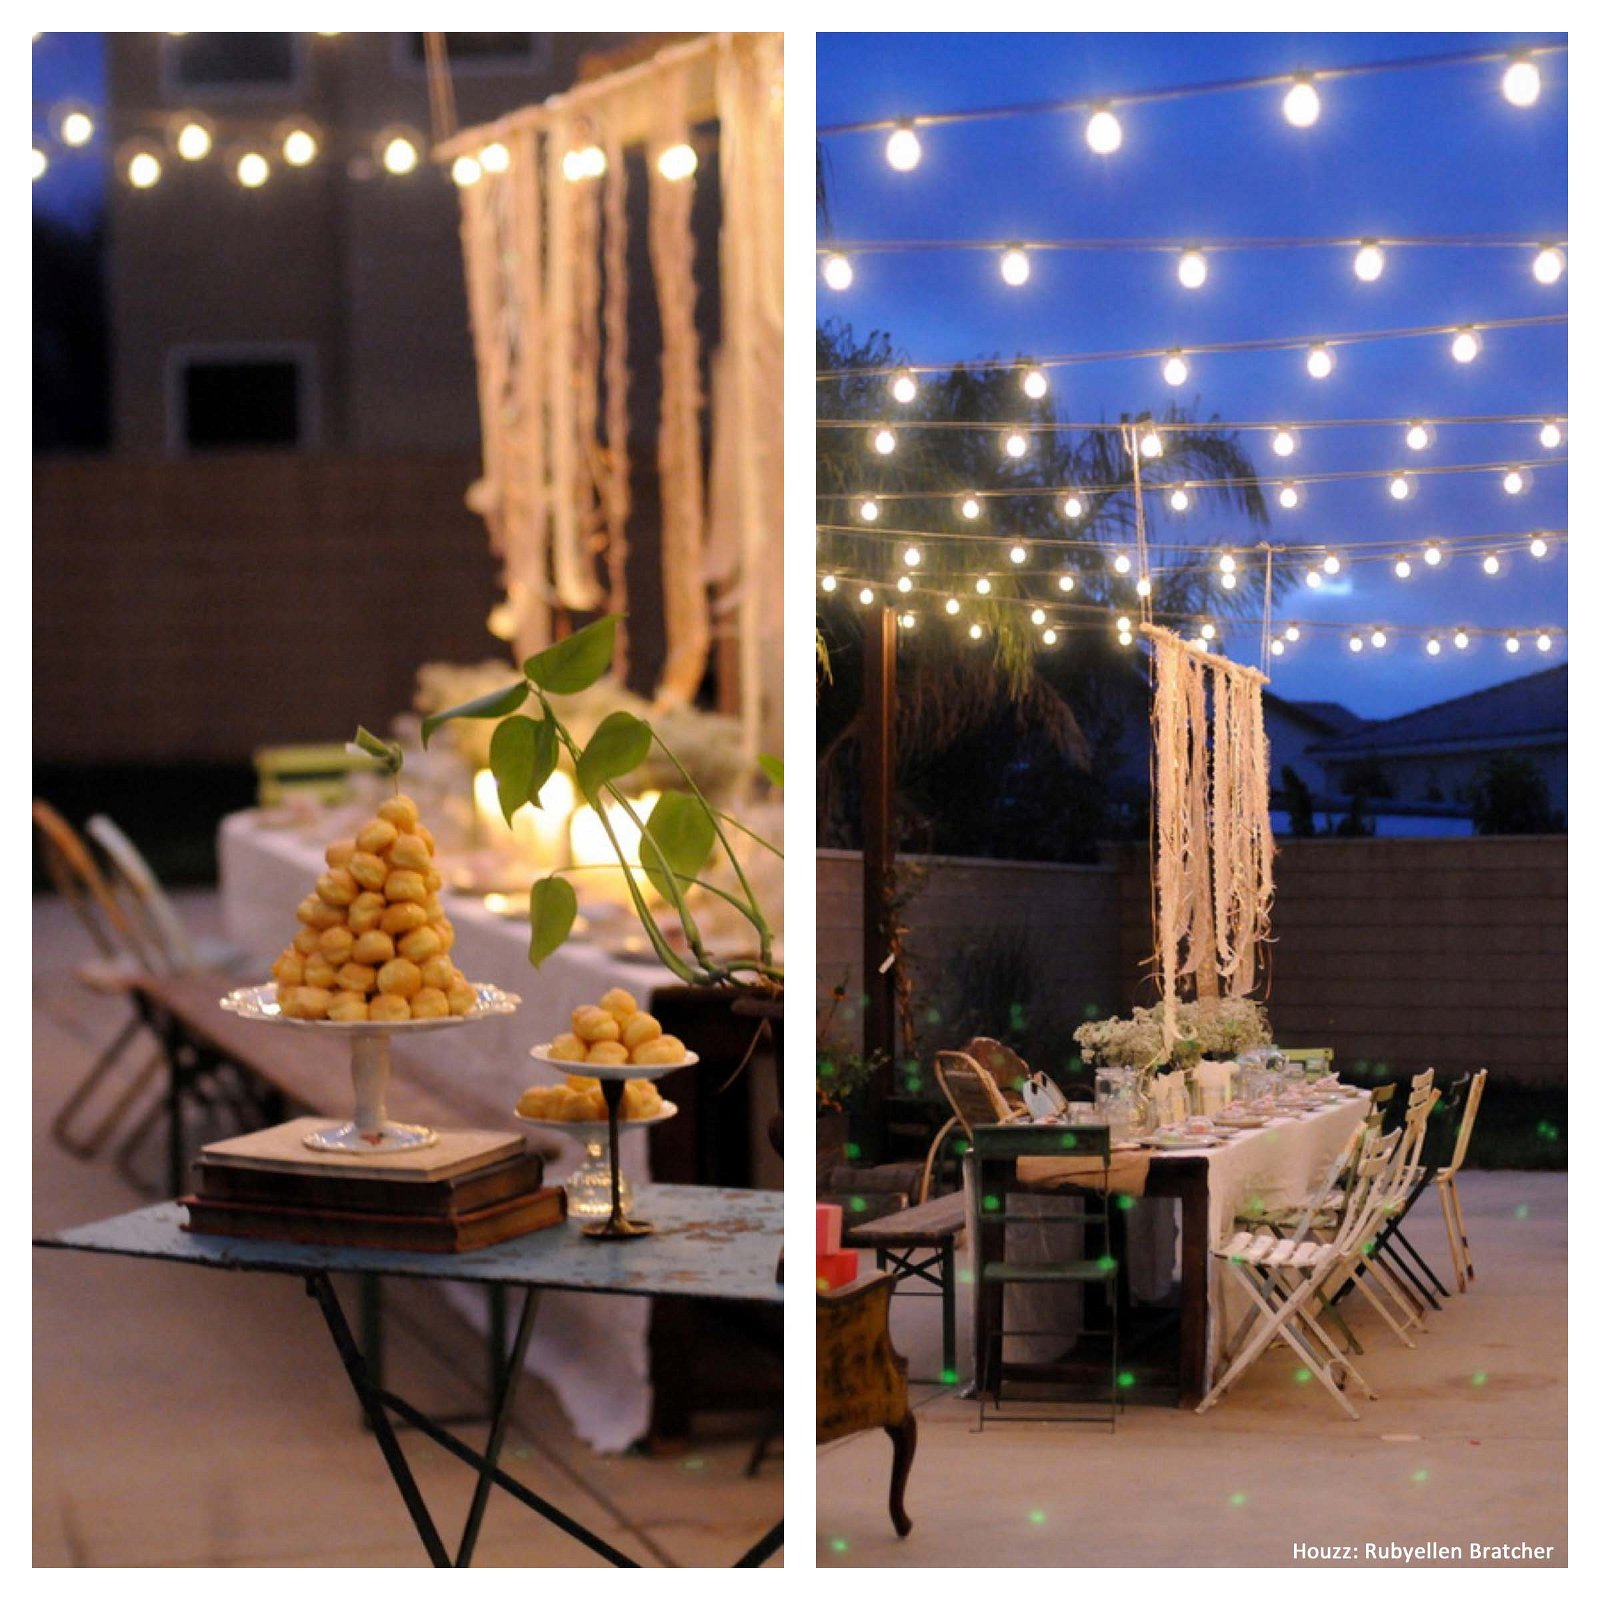 22.SIMPHOME.COM backyard party ideas outdoor living spaces homes tradition